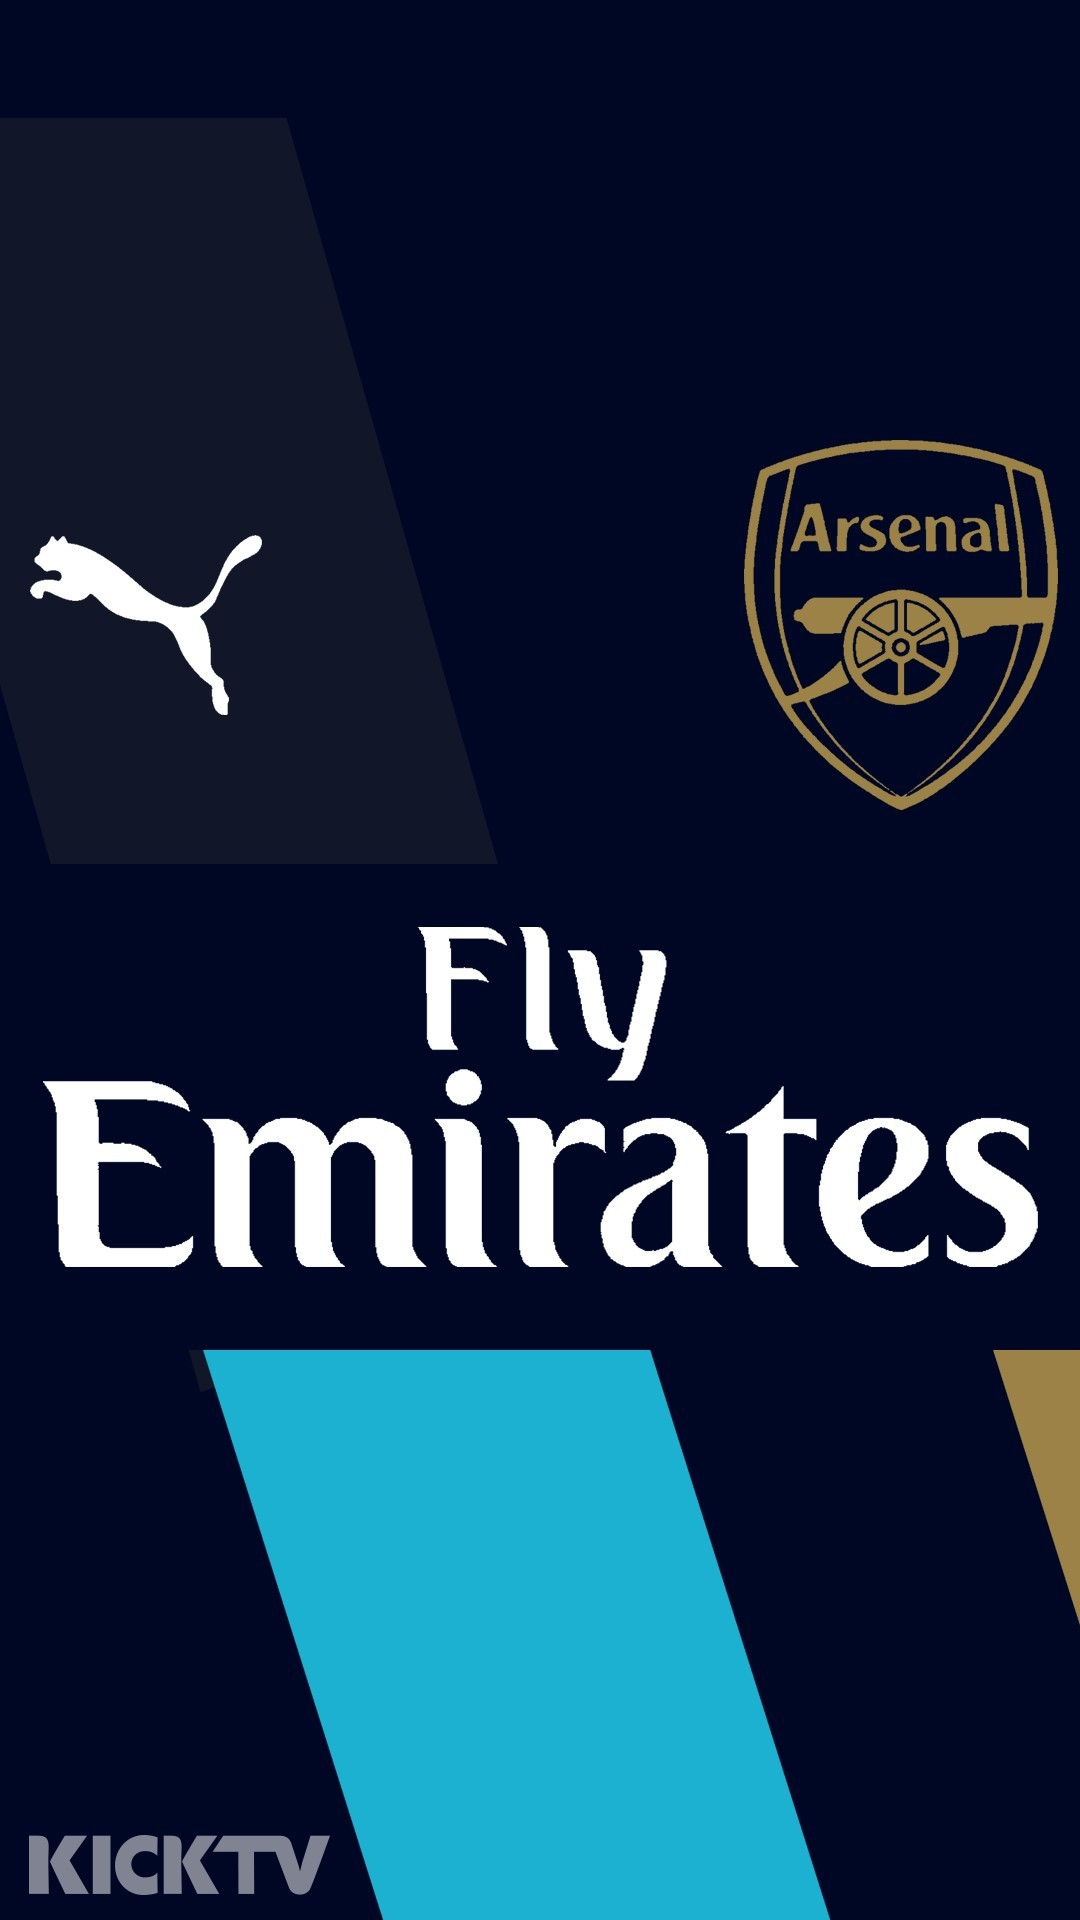 Arsenal Logo Wallpapers 2018 86 Background Pictures